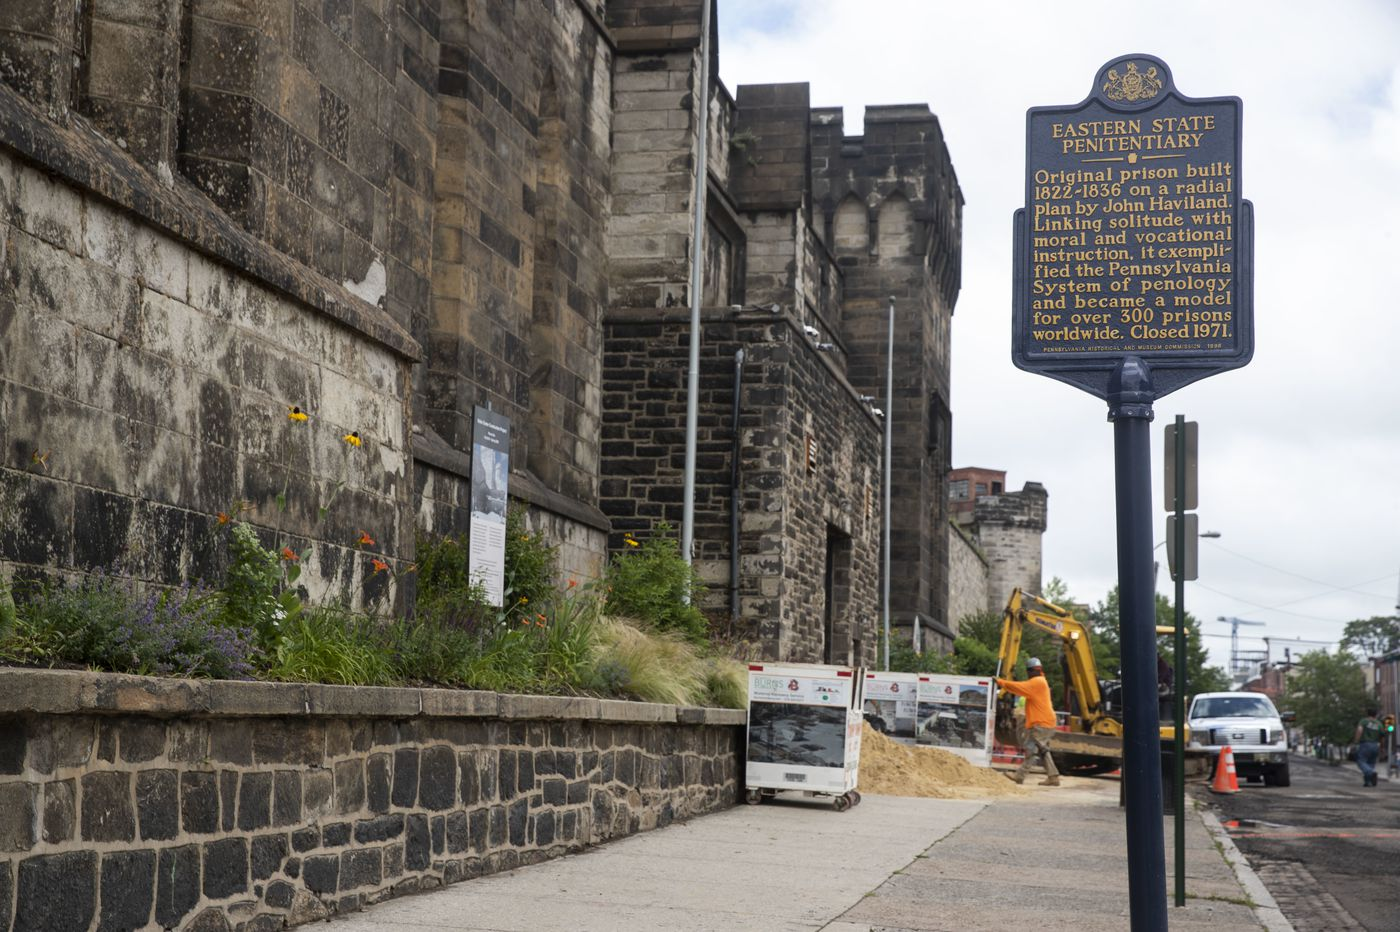 Eastern State Penitentiary and one major museum will reopen in August — with many more right after that